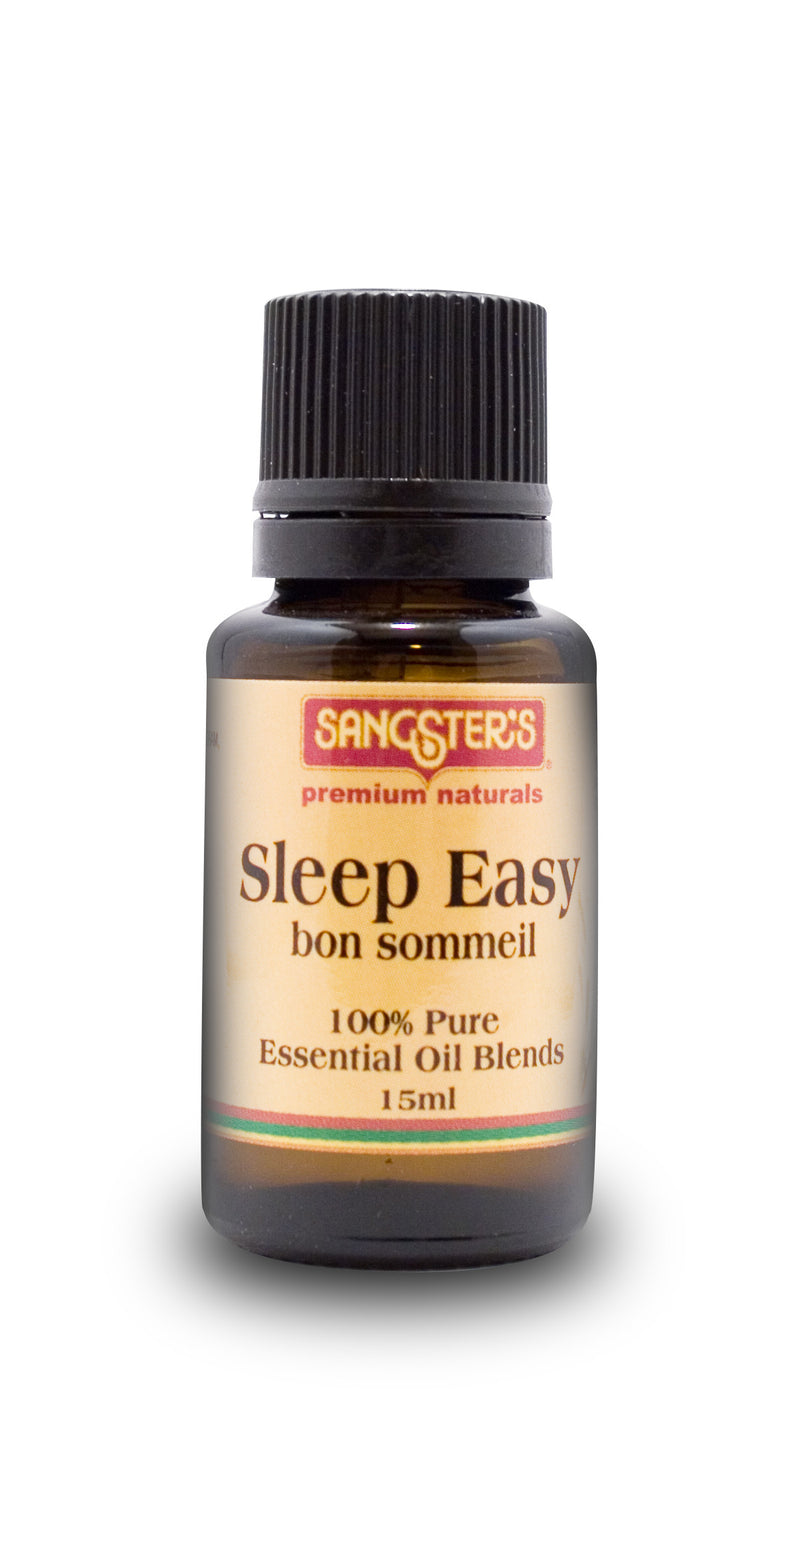 Sangster's Sleep Easy 100% Pure Essential Oil 15ml